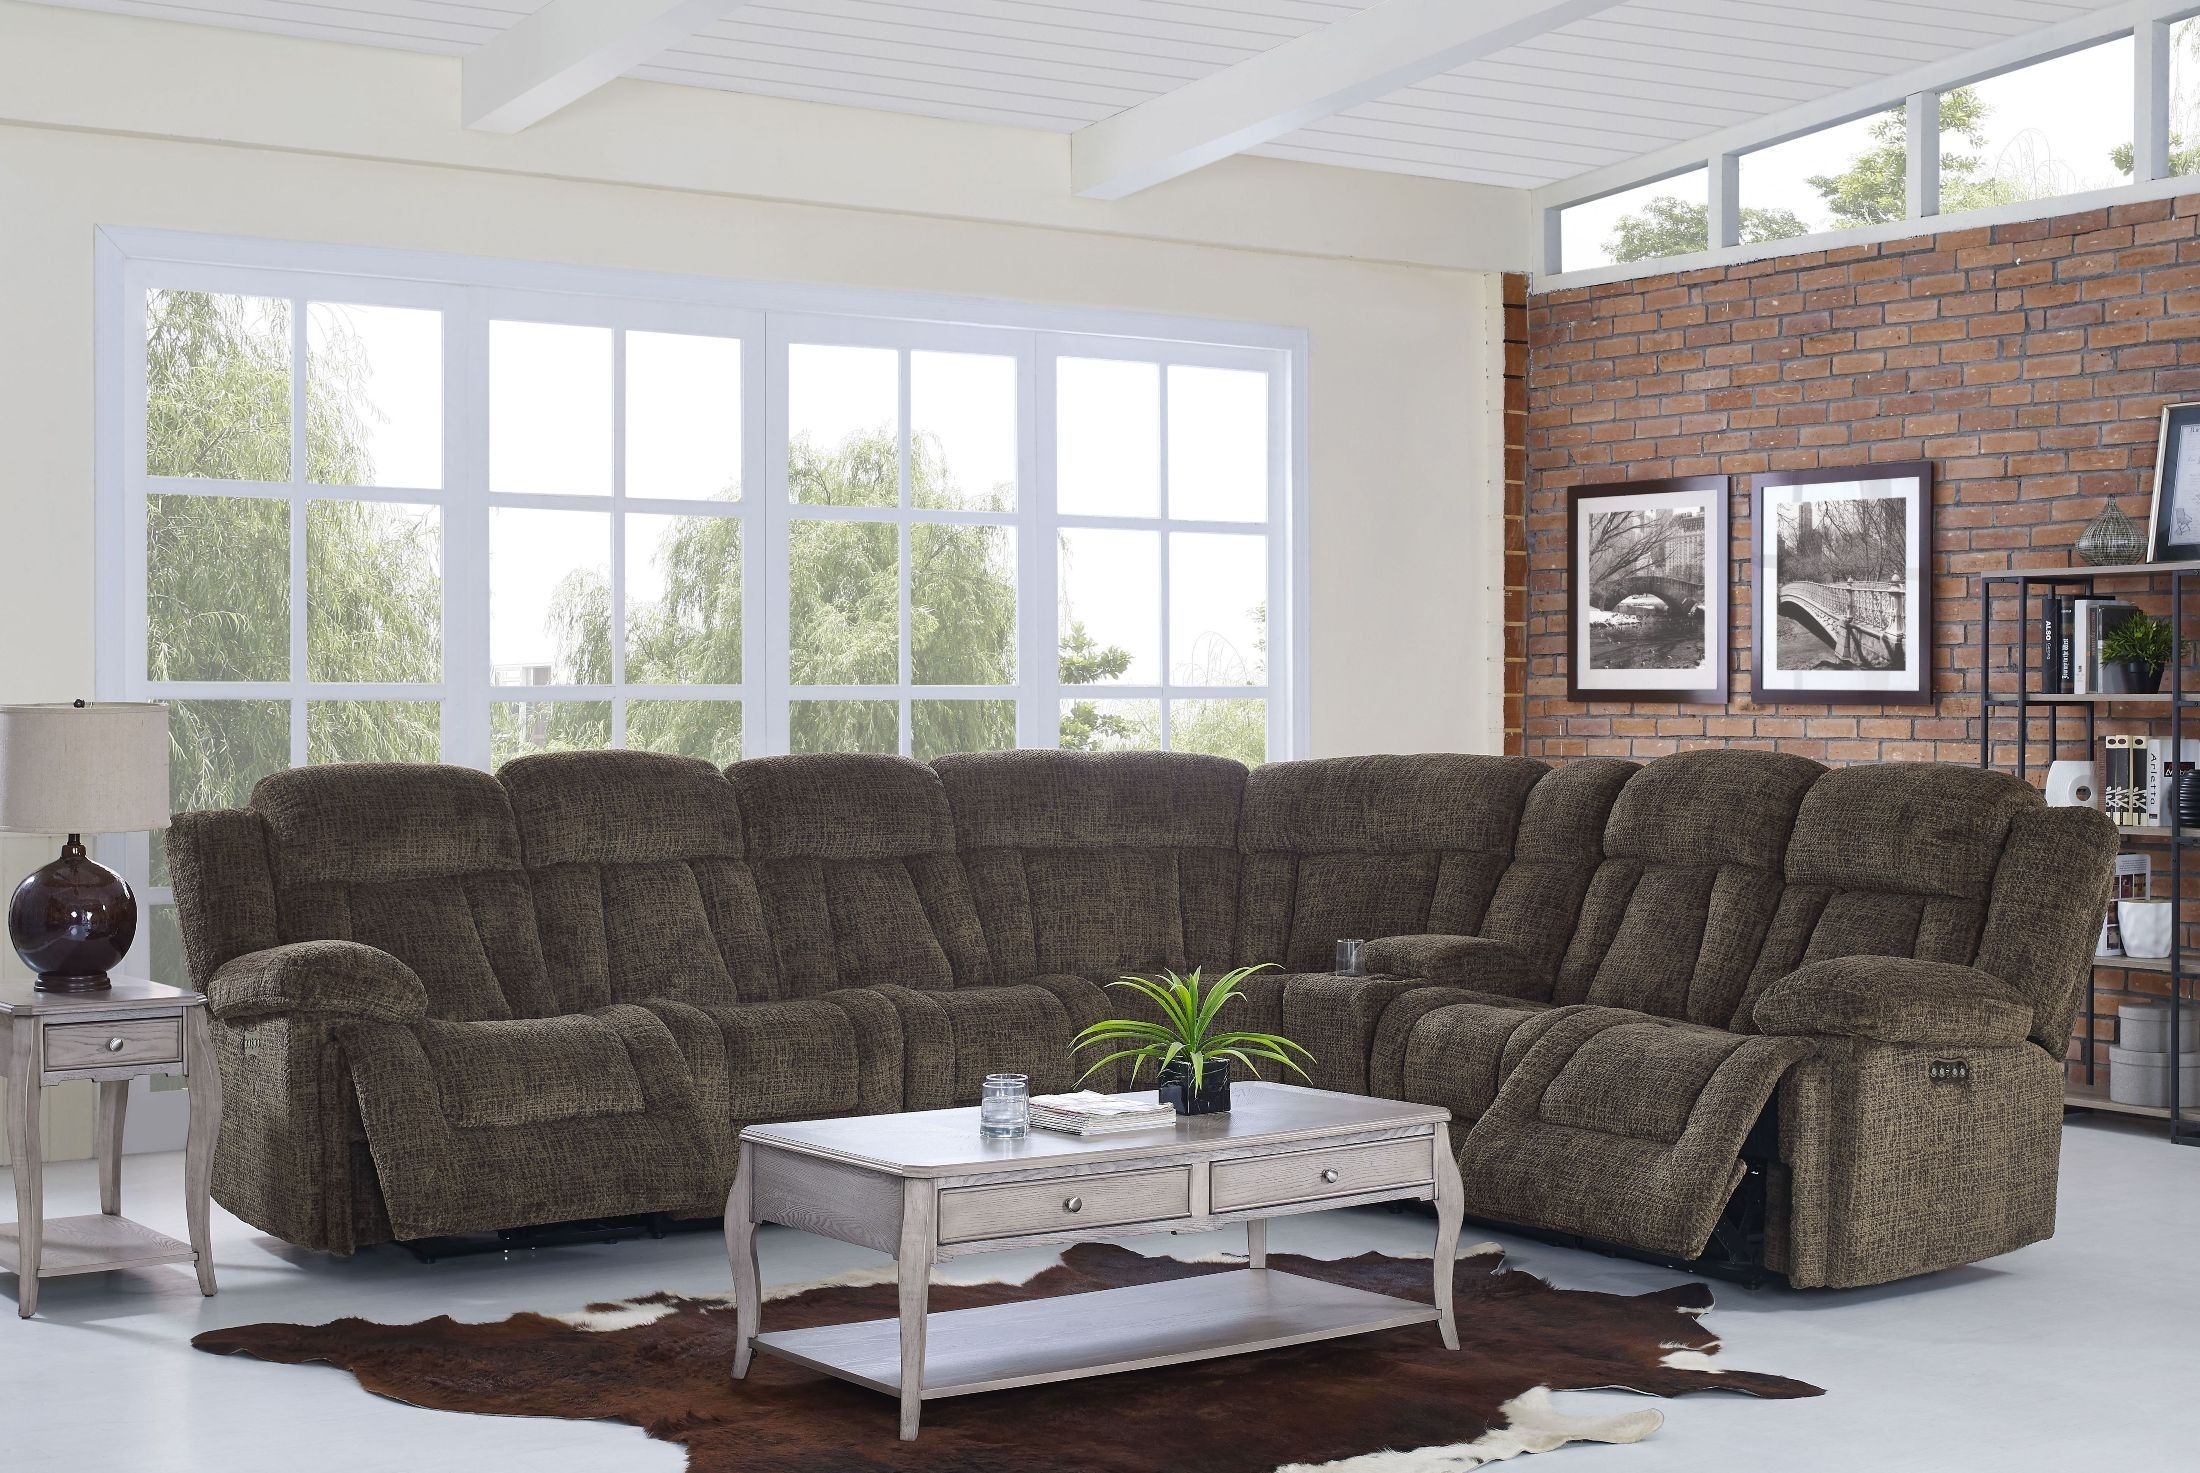 Laura Chocolate Reclining Sectional From New Classic | Coleman Furniture regarding Turdur 2 Piece Sectionals With Laf Loveseat (Image 13 of 30)